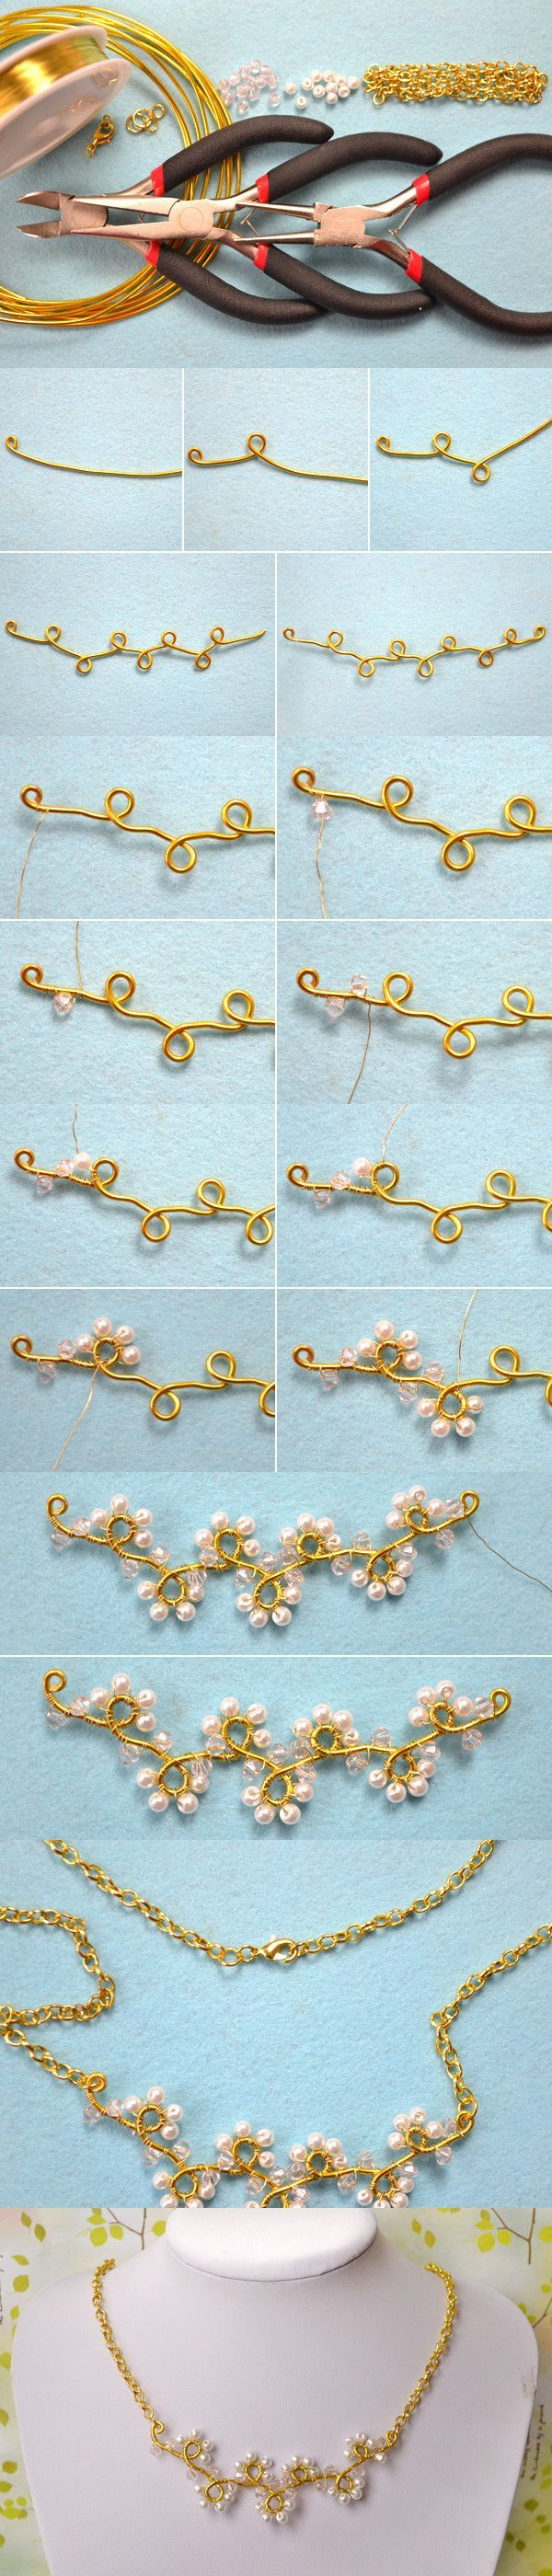 Easy Steps On How To Get The Best Jewelry | fotografias | Pinterest ...